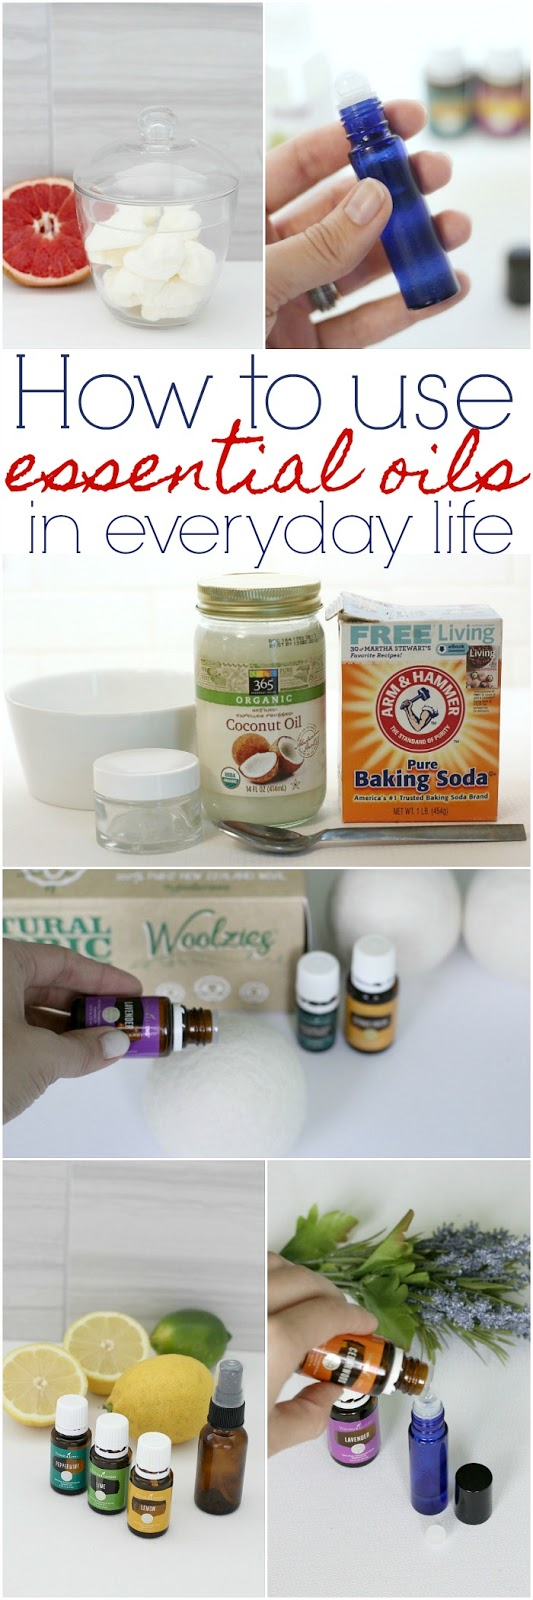 How to use essential oils in every day life, DIY with essential oils, homemade products with essential oils, using essential oils